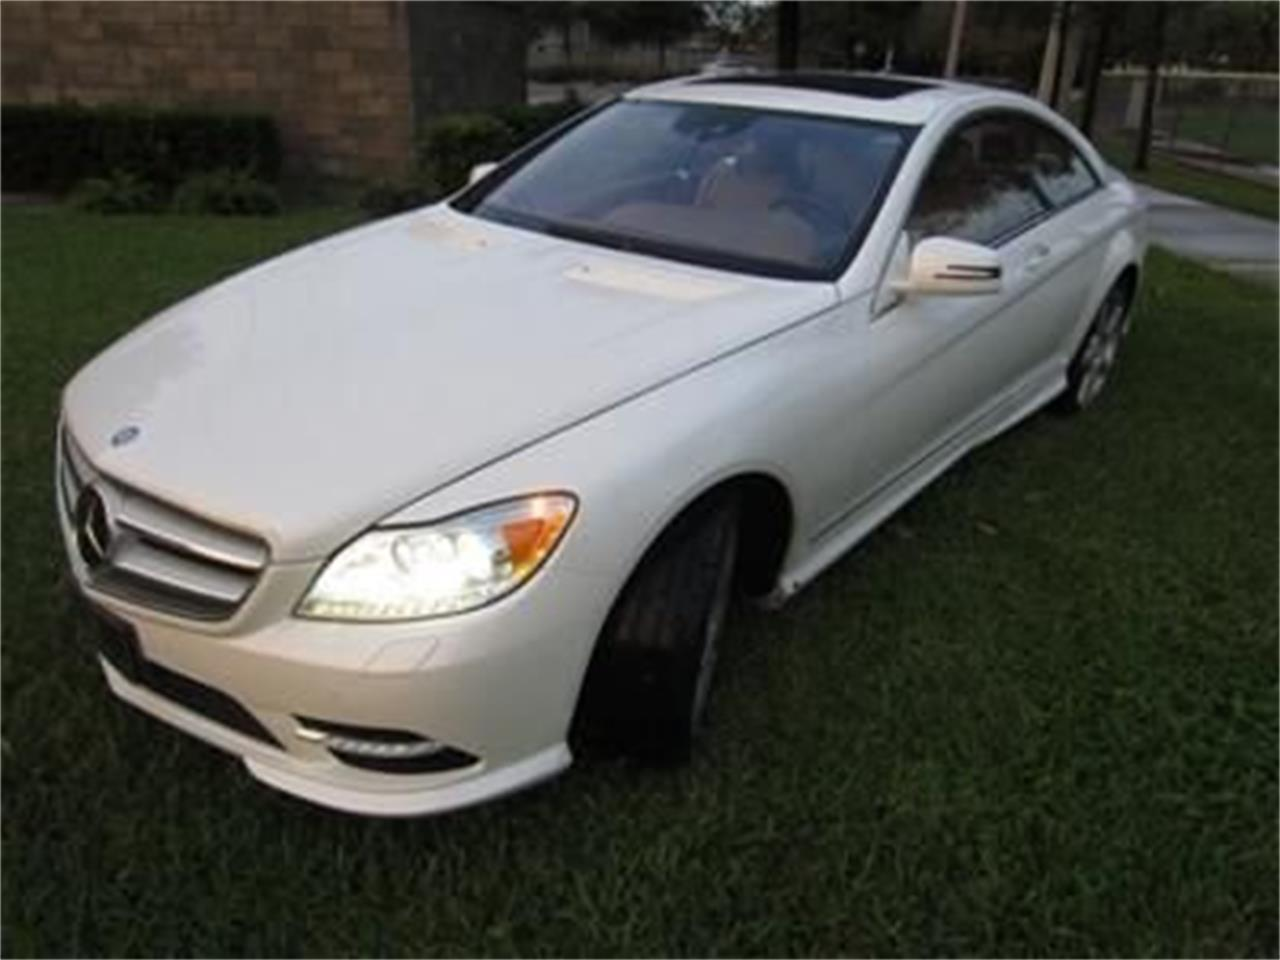 2014 Mercedes-Benz CL550 (CC-1421888) for sale in Punta Gorda, Florida